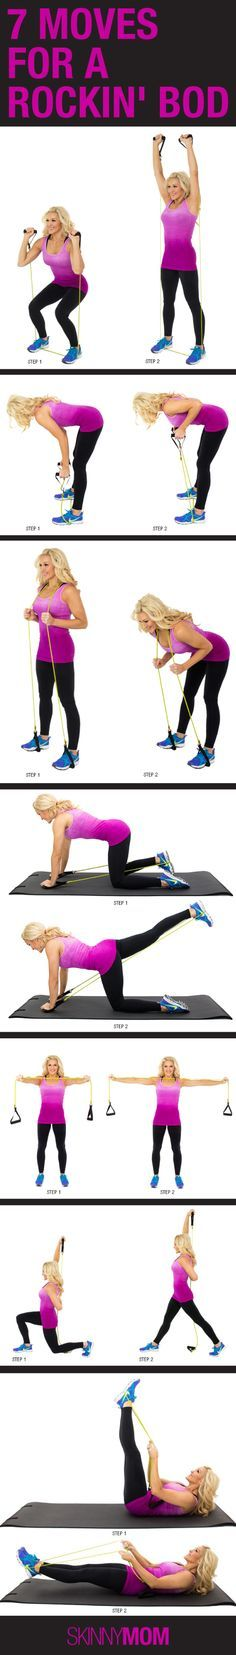 Try these 7 moves! Check out the website to see the diet im currently on, results coming soon!